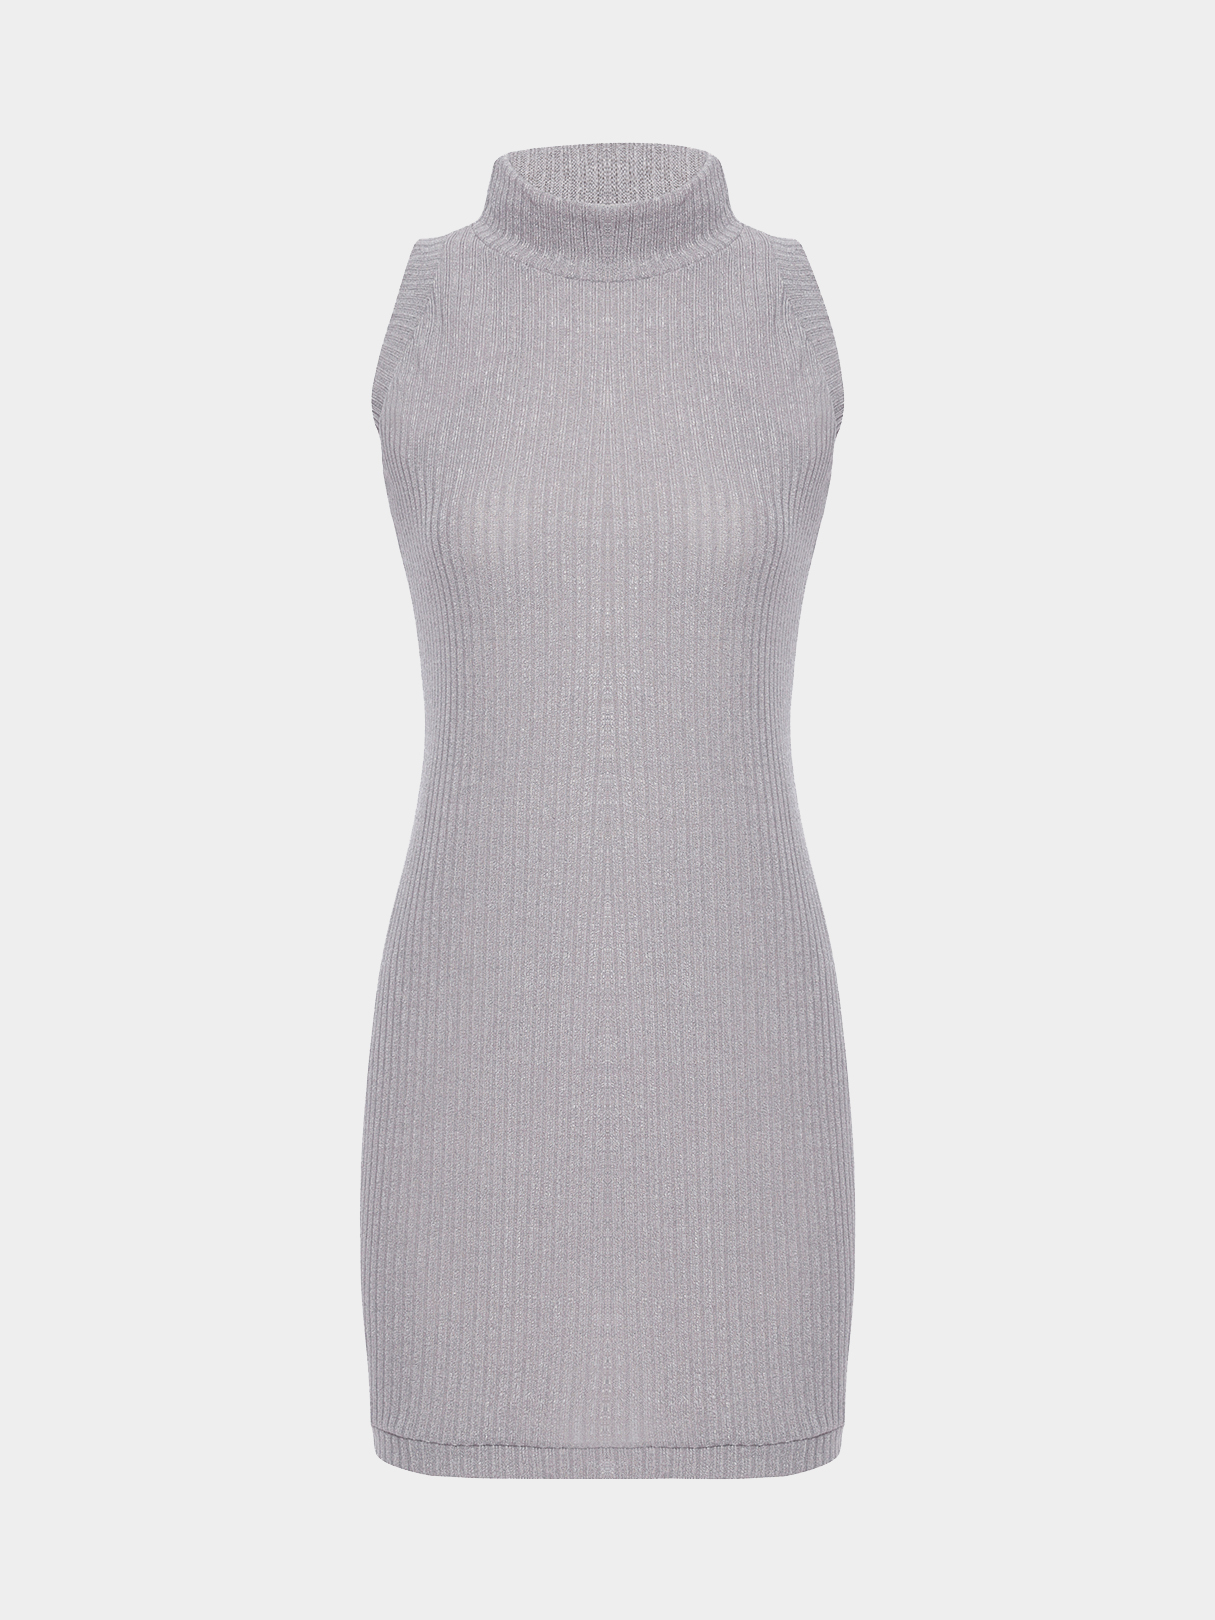 Grey Sleeveless Crew Neck Knitted Mini Dress